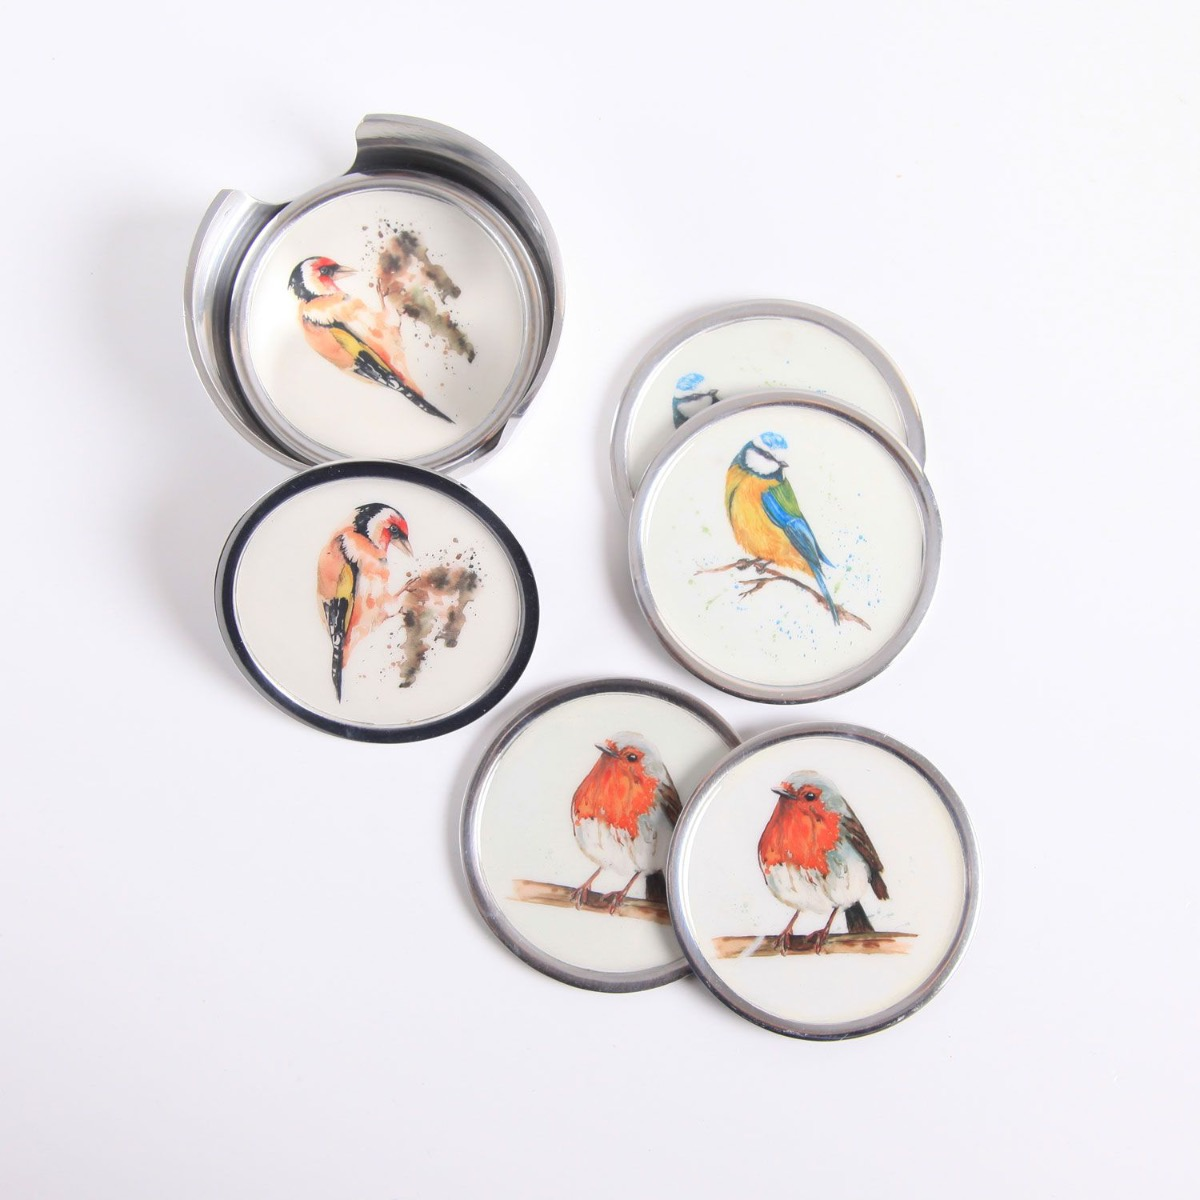 A selection of Garden Birds Coasters scattered on a white surface.